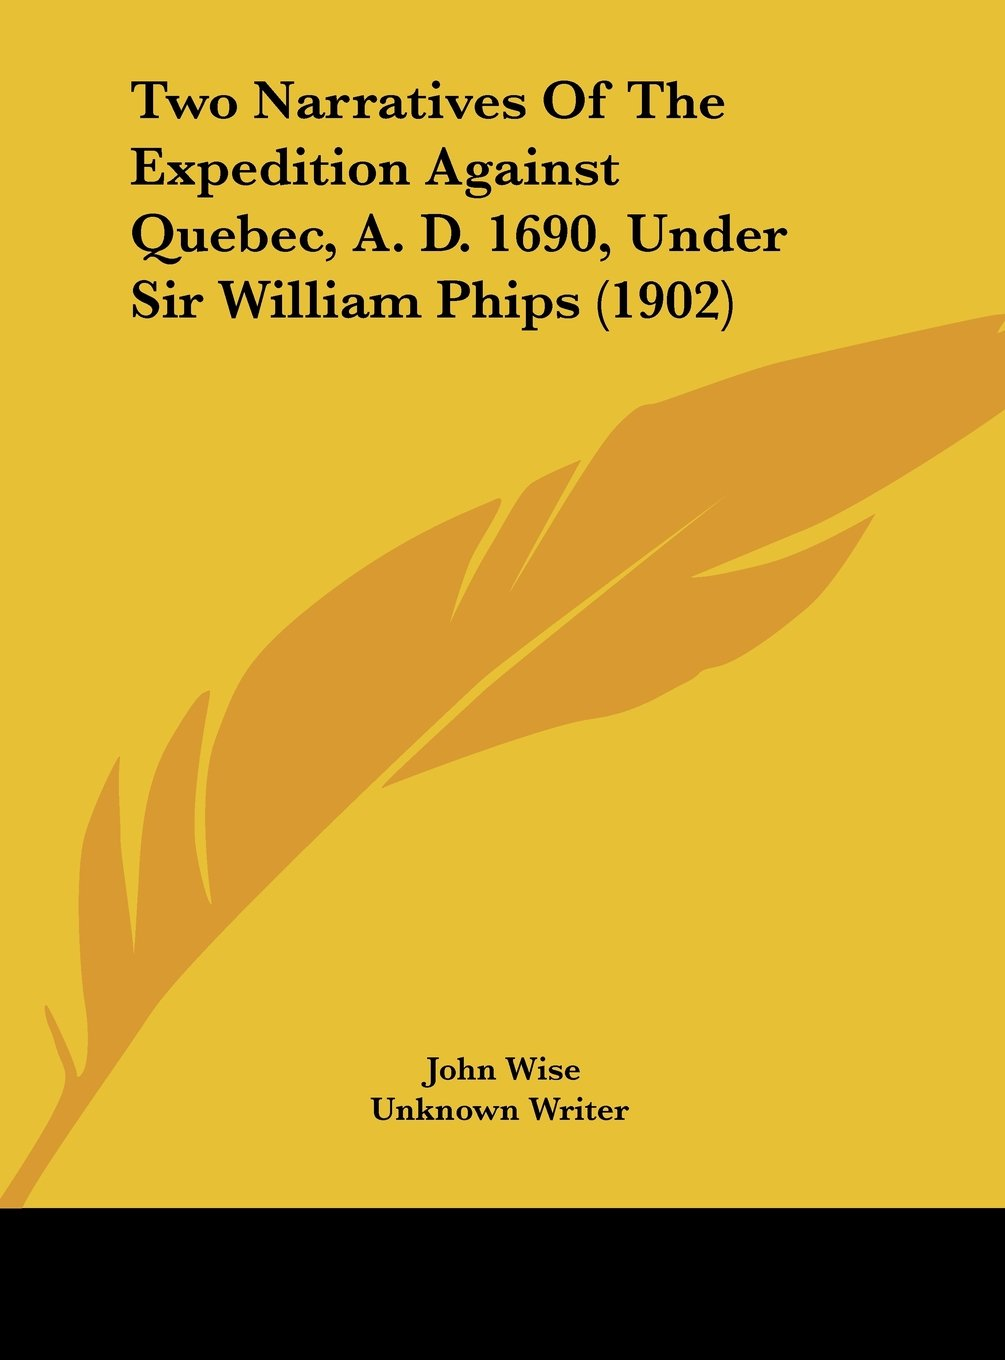 Download Two Narratives Of The Expedition Against Quebec, A. D. 1690, Under Sir William Phips (1902) PDF